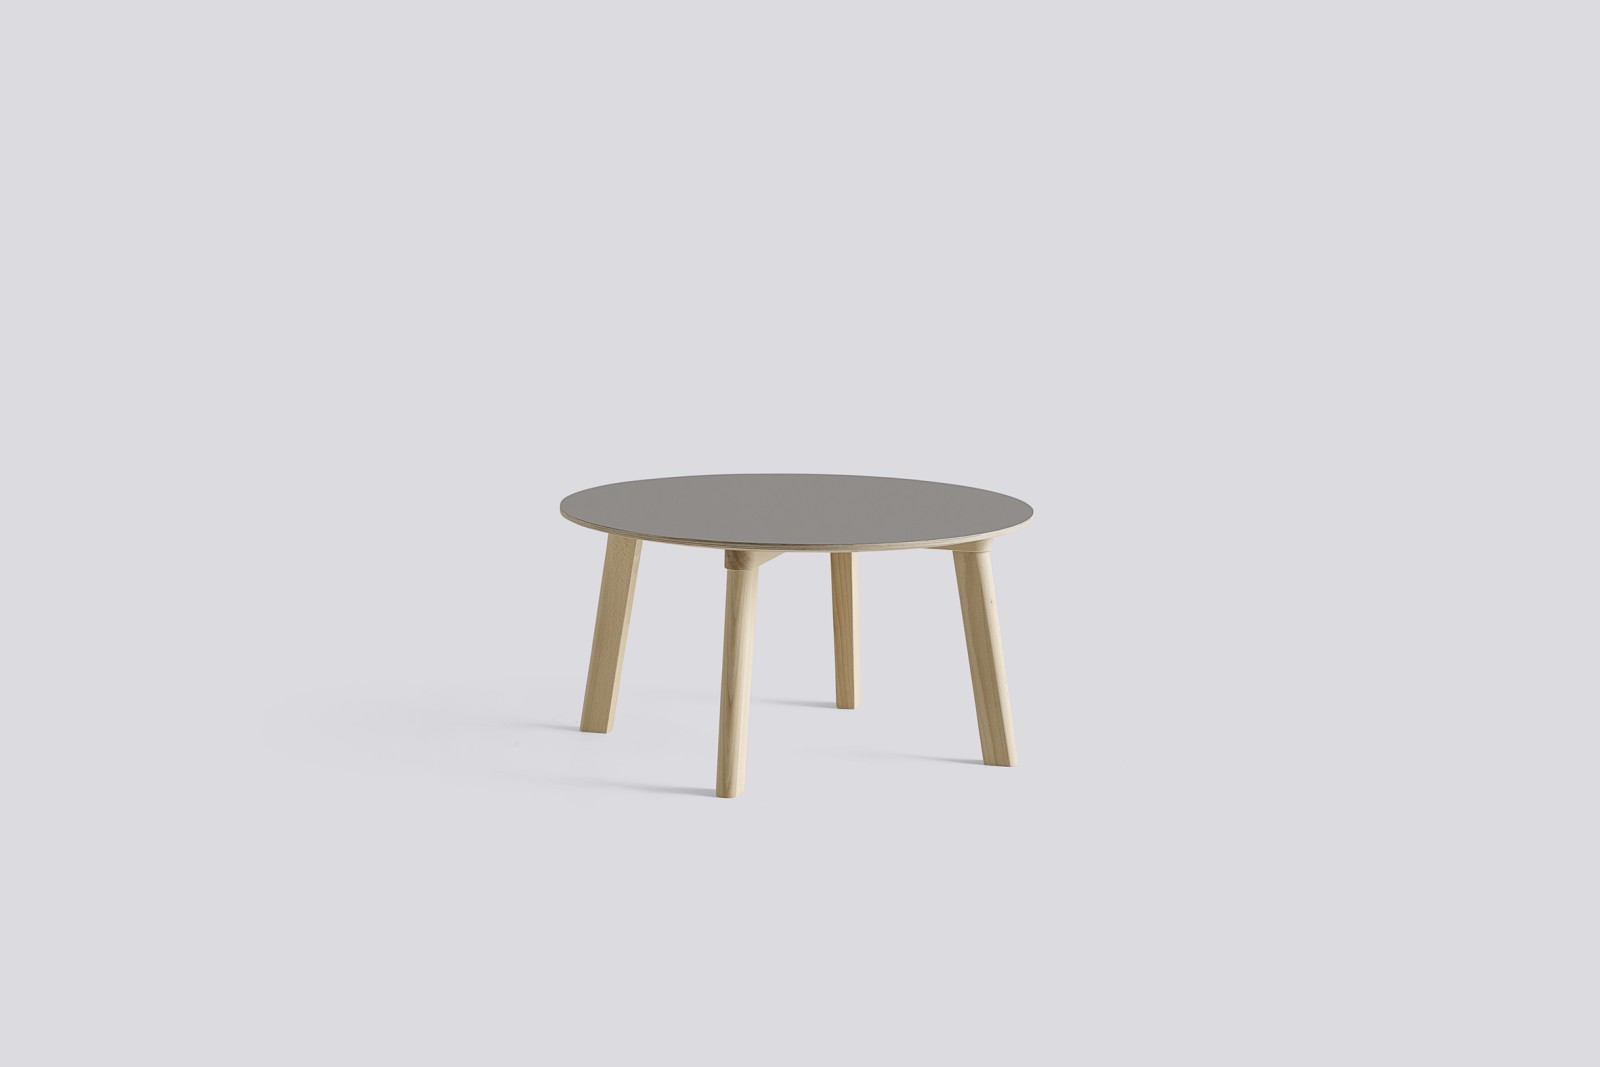 Copenhague Deux (CPH 250) Round Coffee Table Dusty Grey Laminate Top, Untreated Beech Base